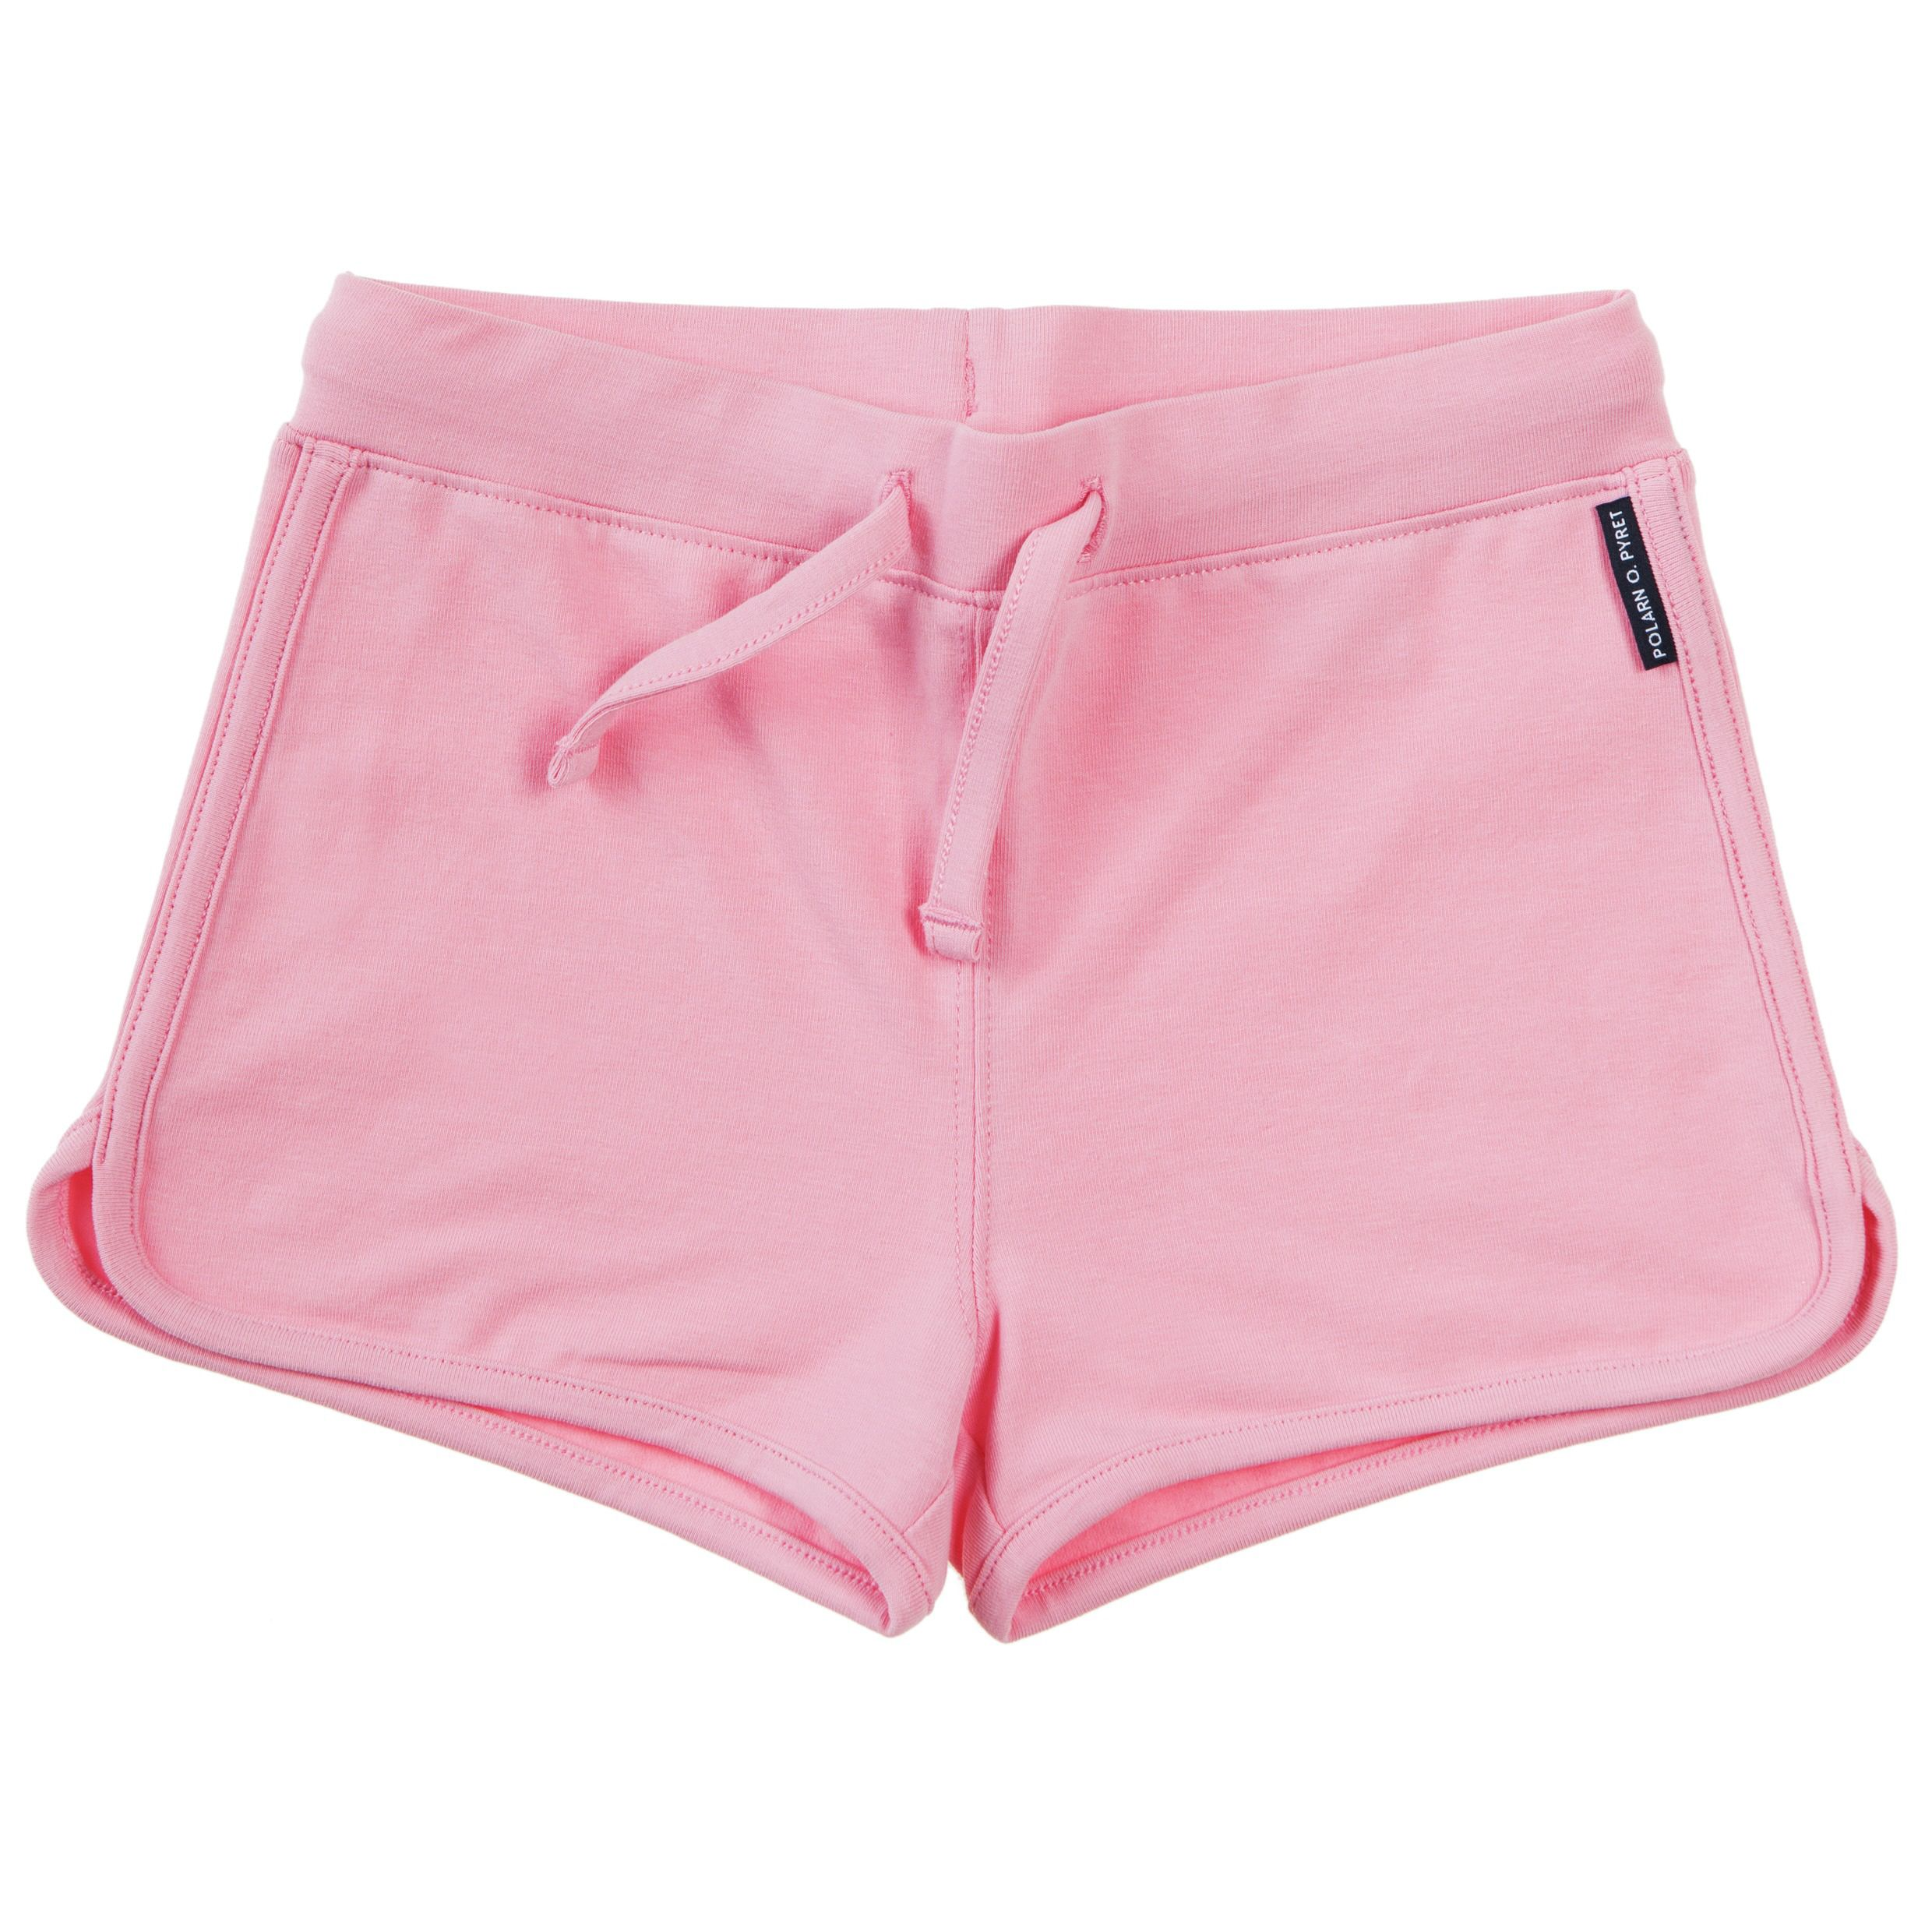 Girls plain pink shorts